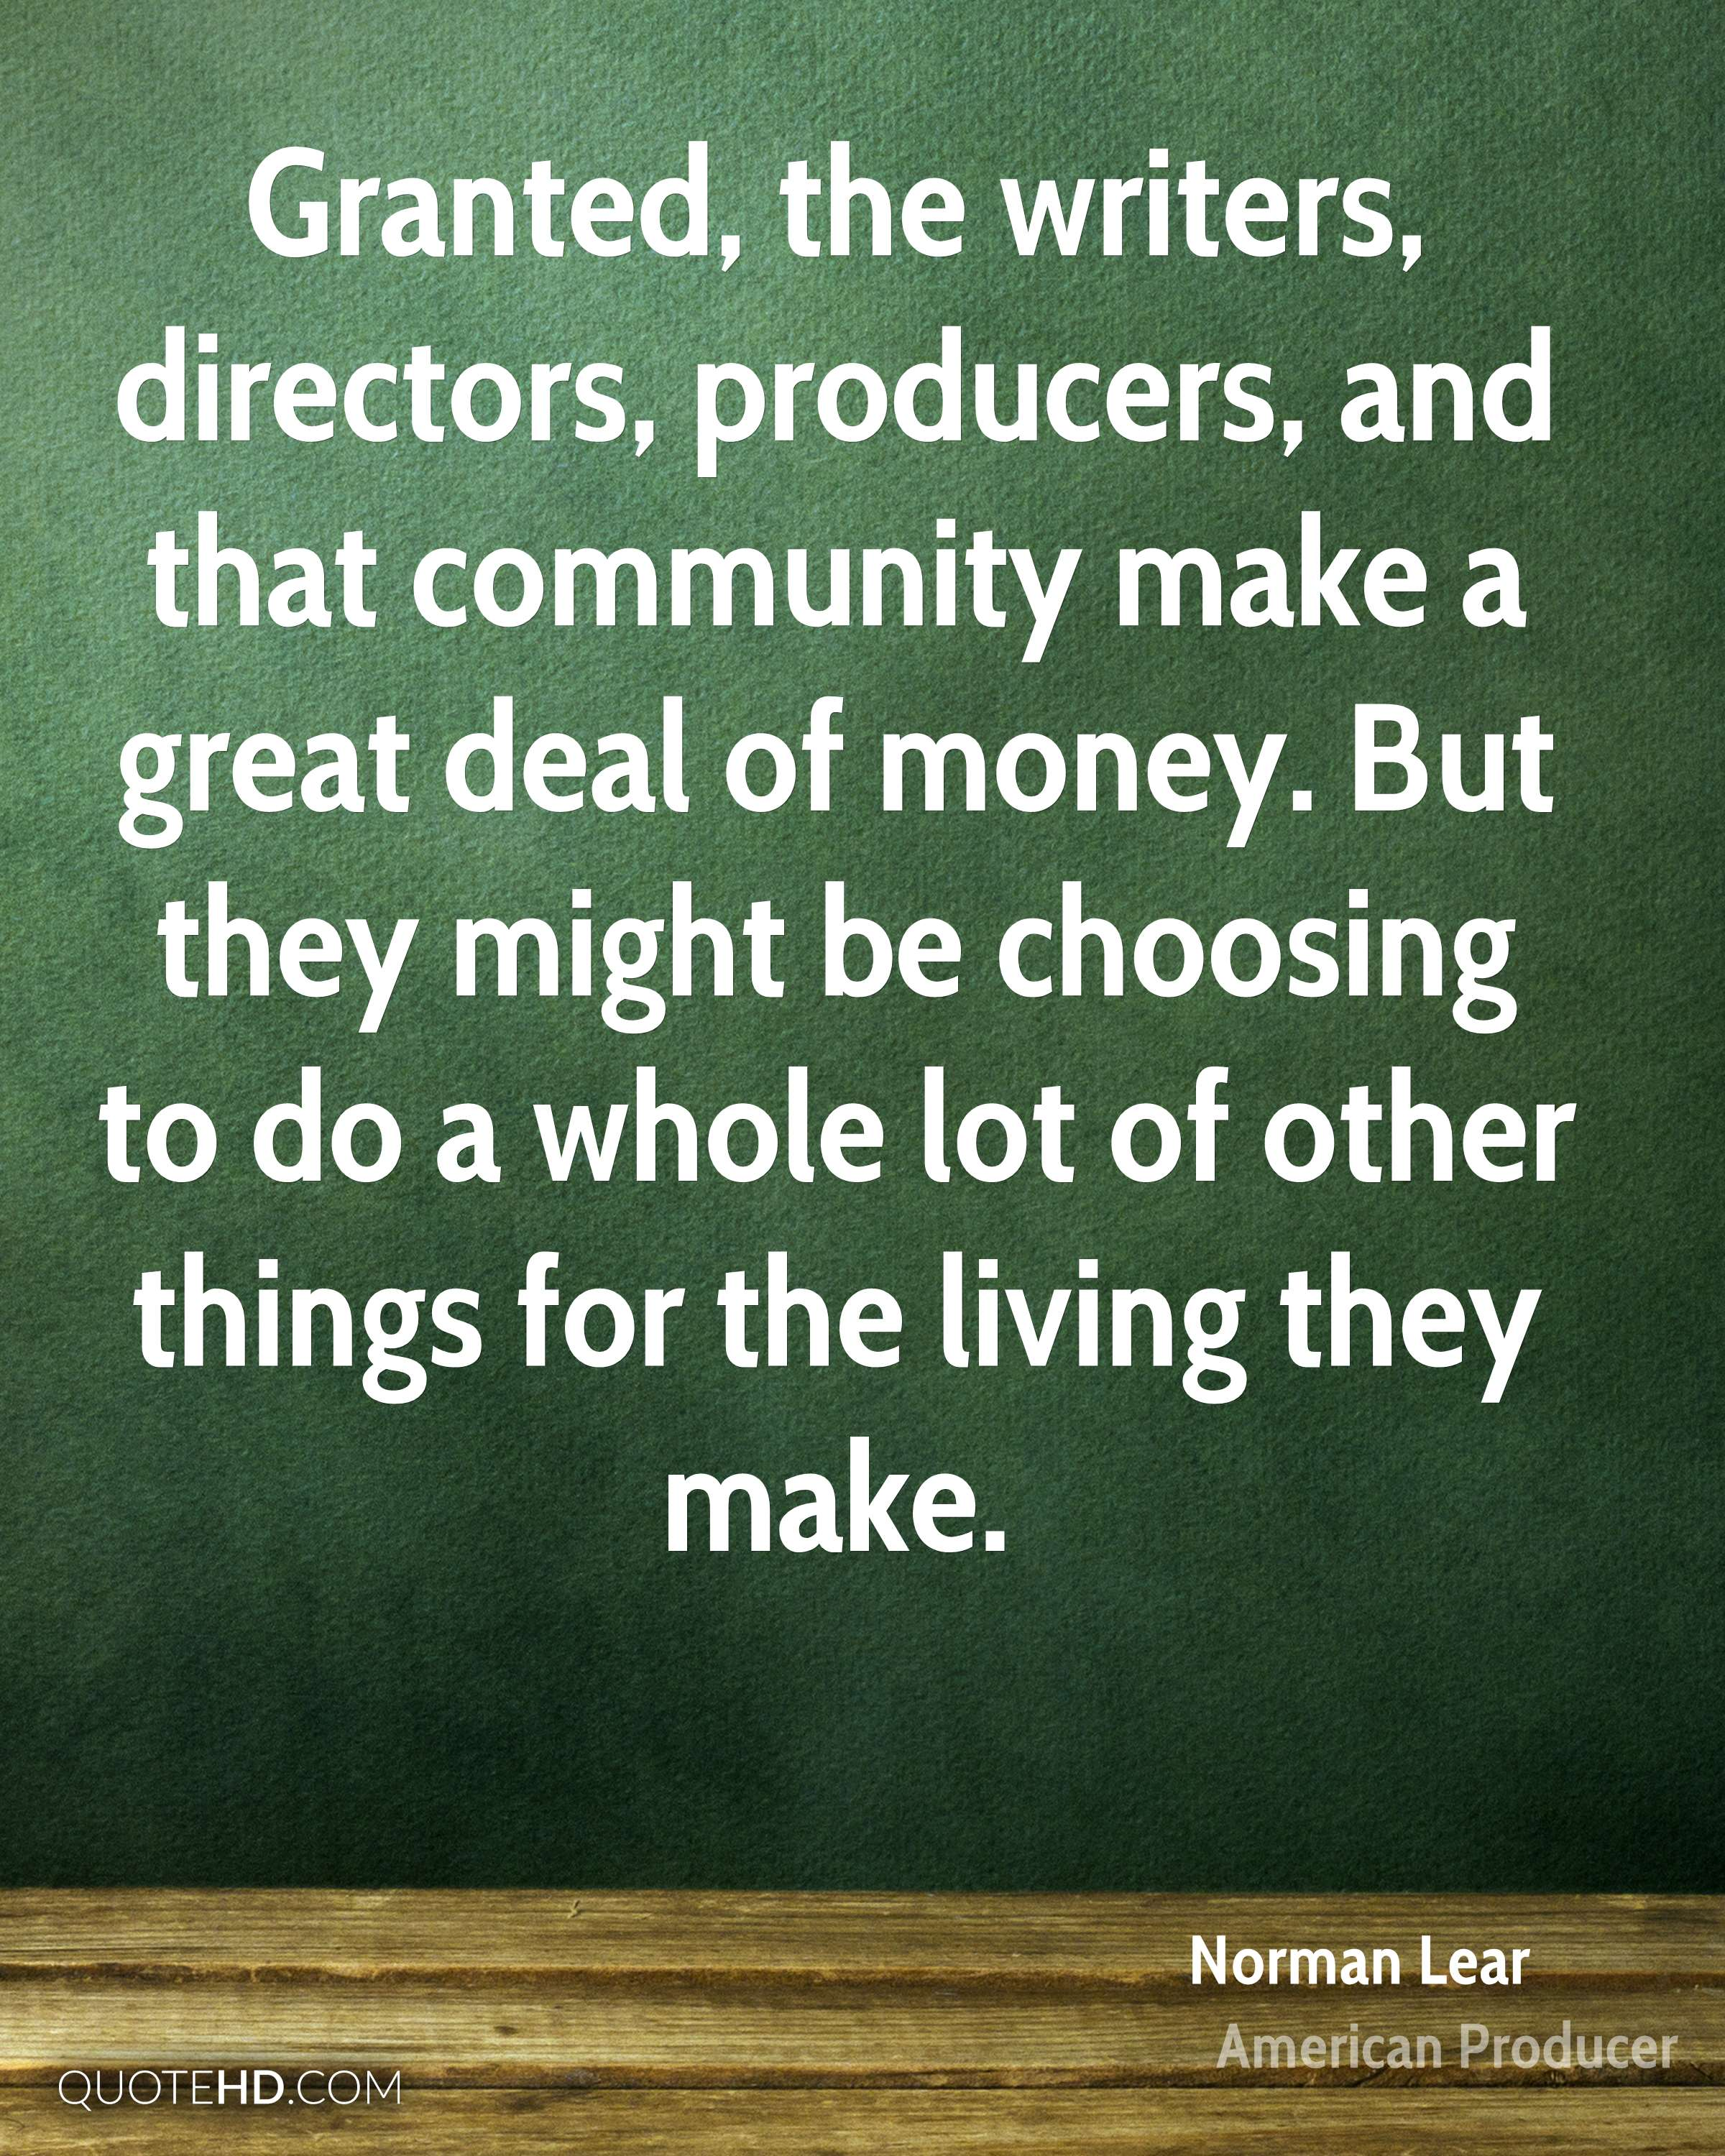 Granted, the writers, directors, producers, and that community make a great deal of money. But they might be choosing to do a whole lot of other things for the living they make.